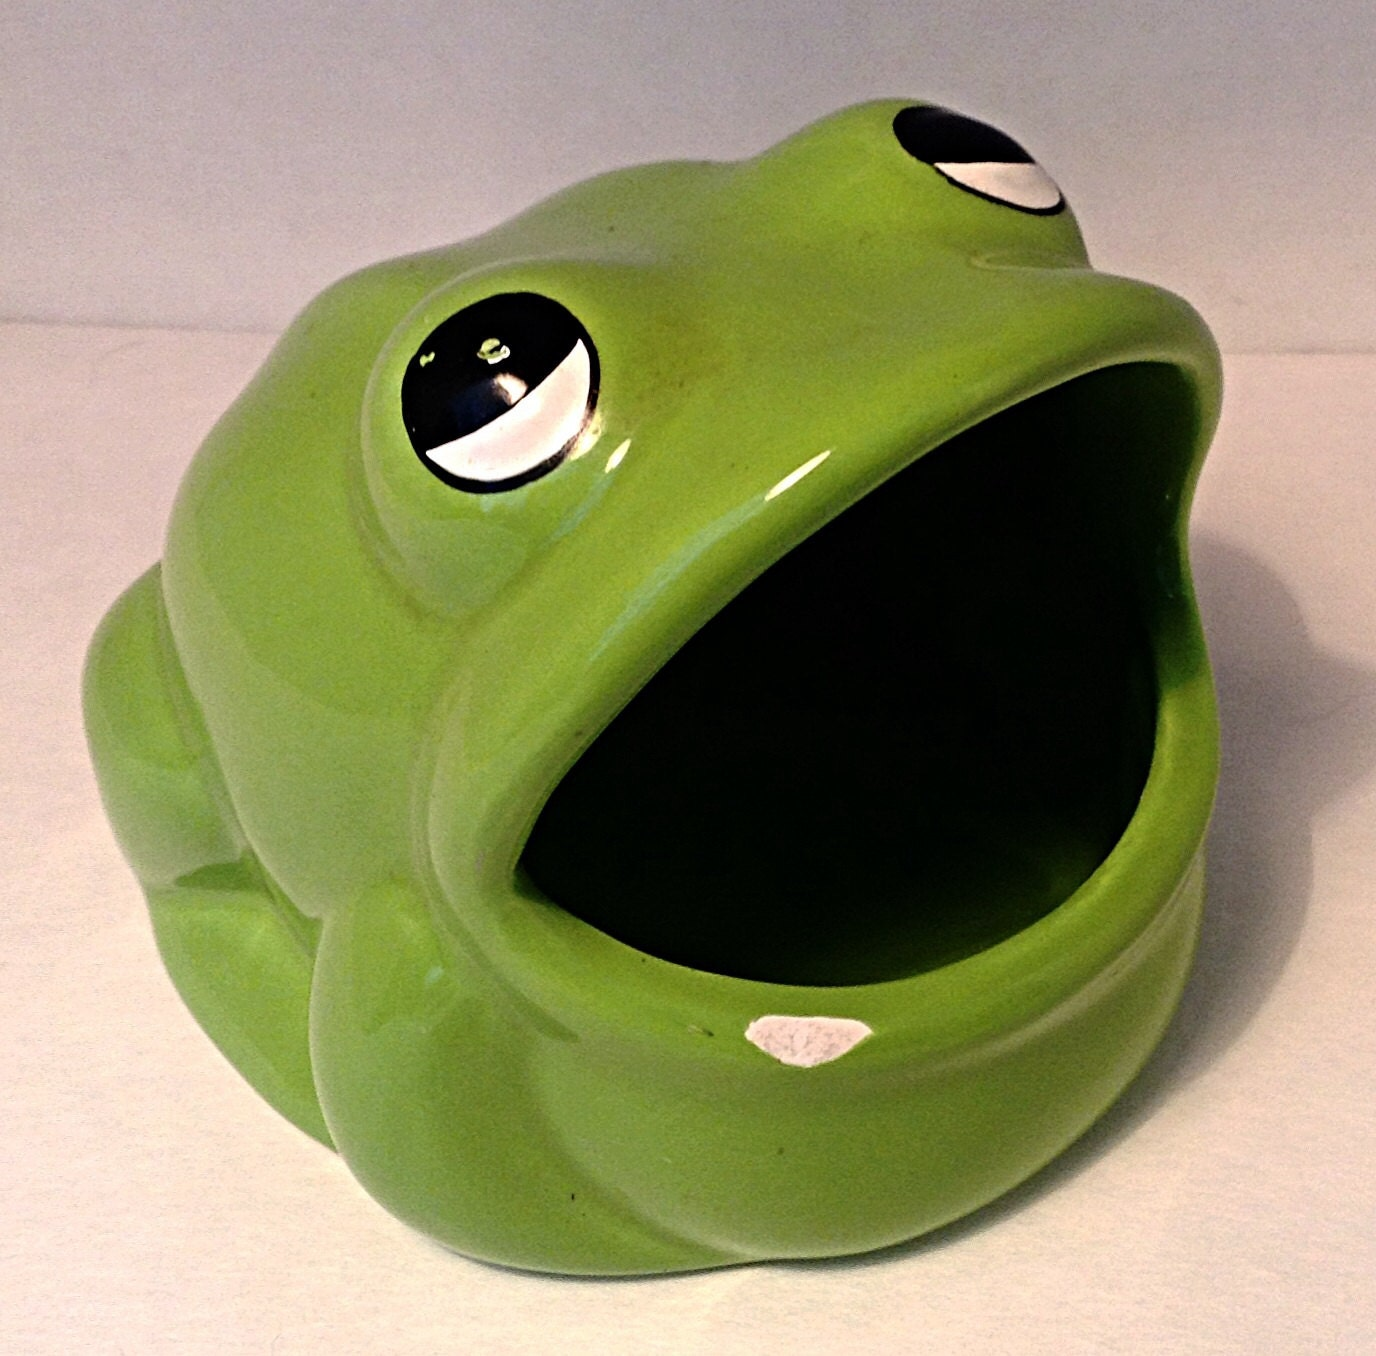 Vintage green frog sponge holder by daniscuriouscorner on etsy - Frog sponge holder kitchen sink ...